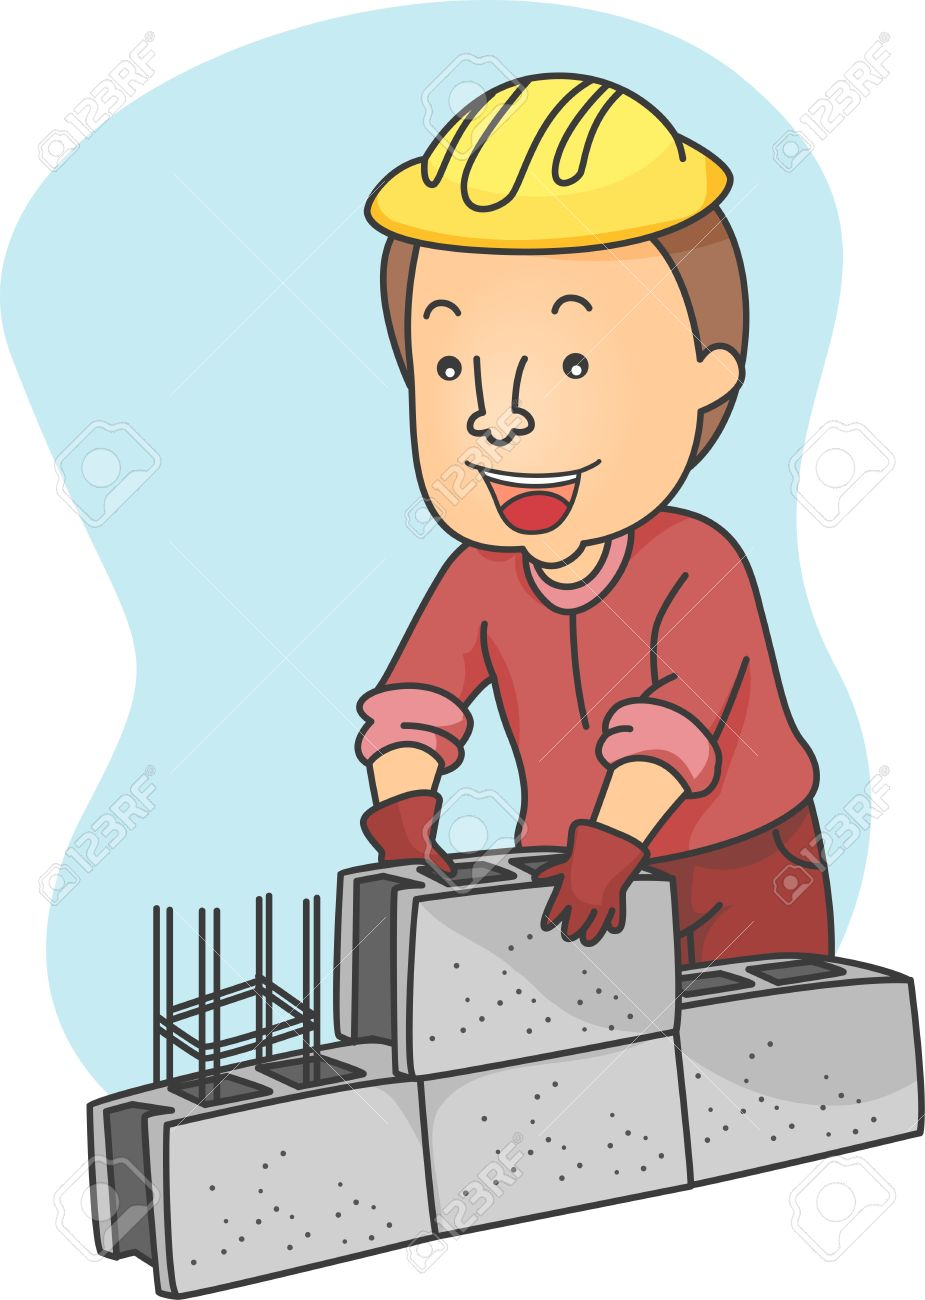 Illustration Of A Man Piling Hollow Blocks Stock Photo, Picture.